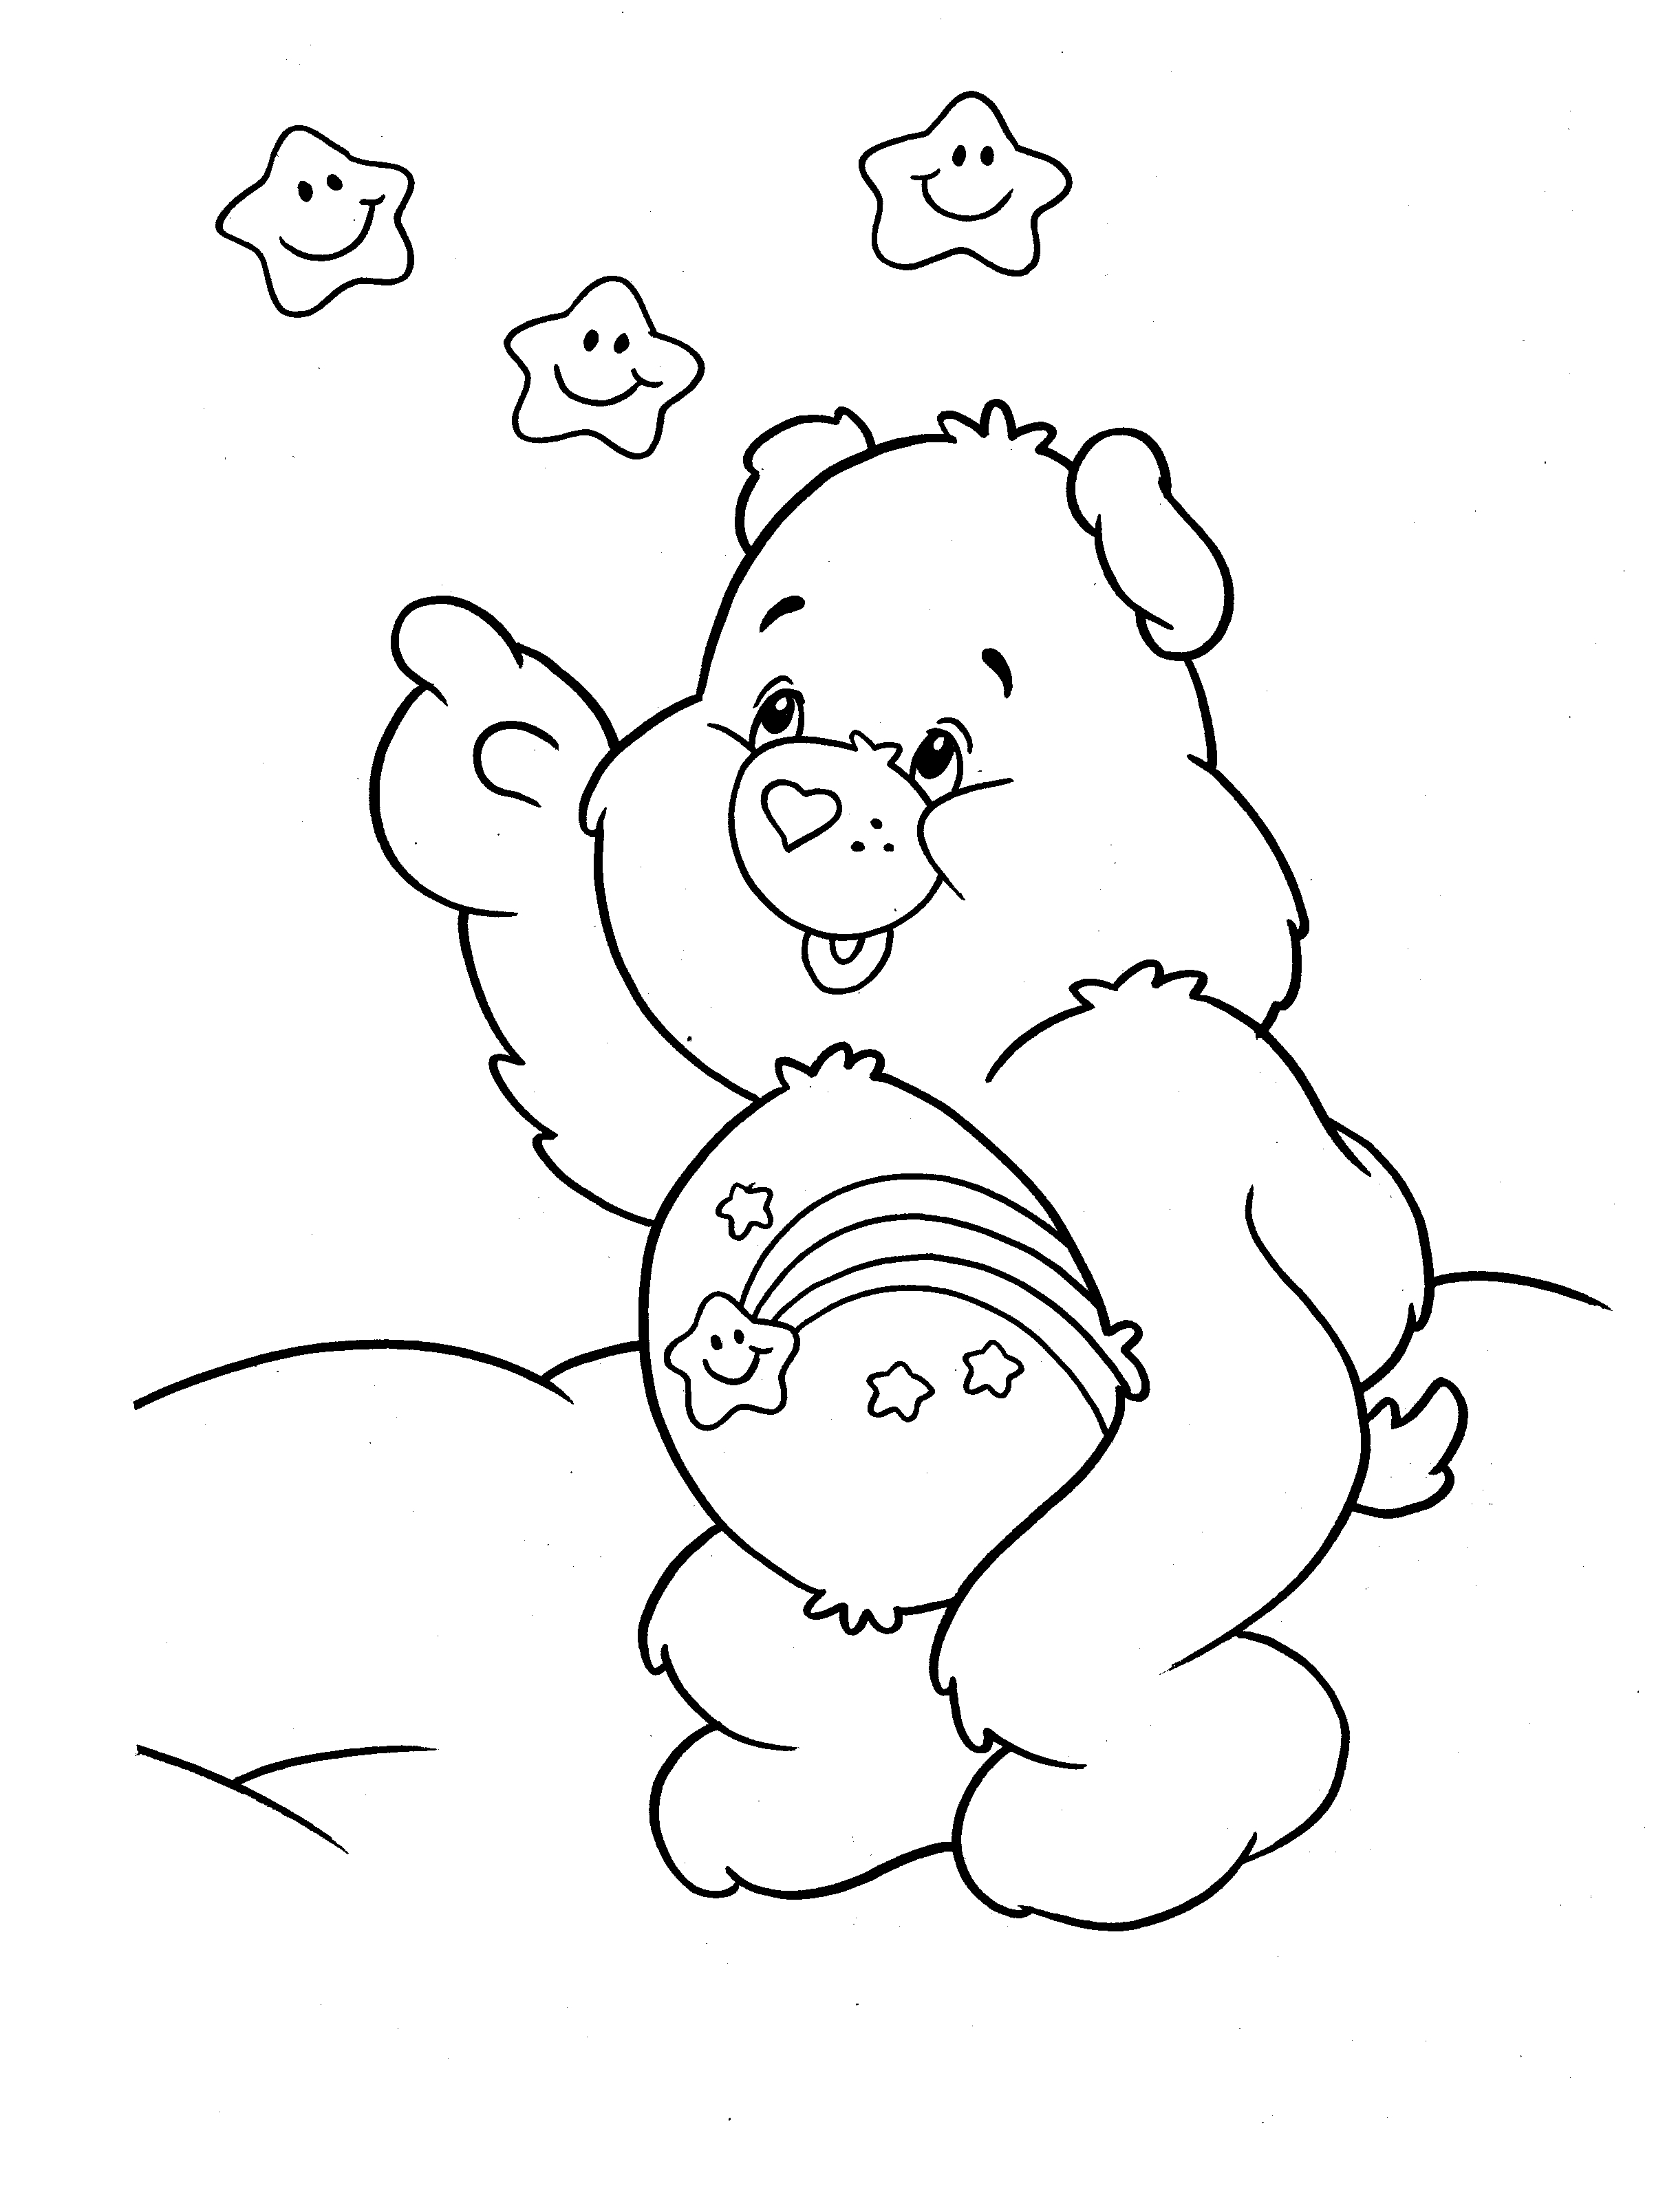 hugs and kisses coloring pages - photo#6